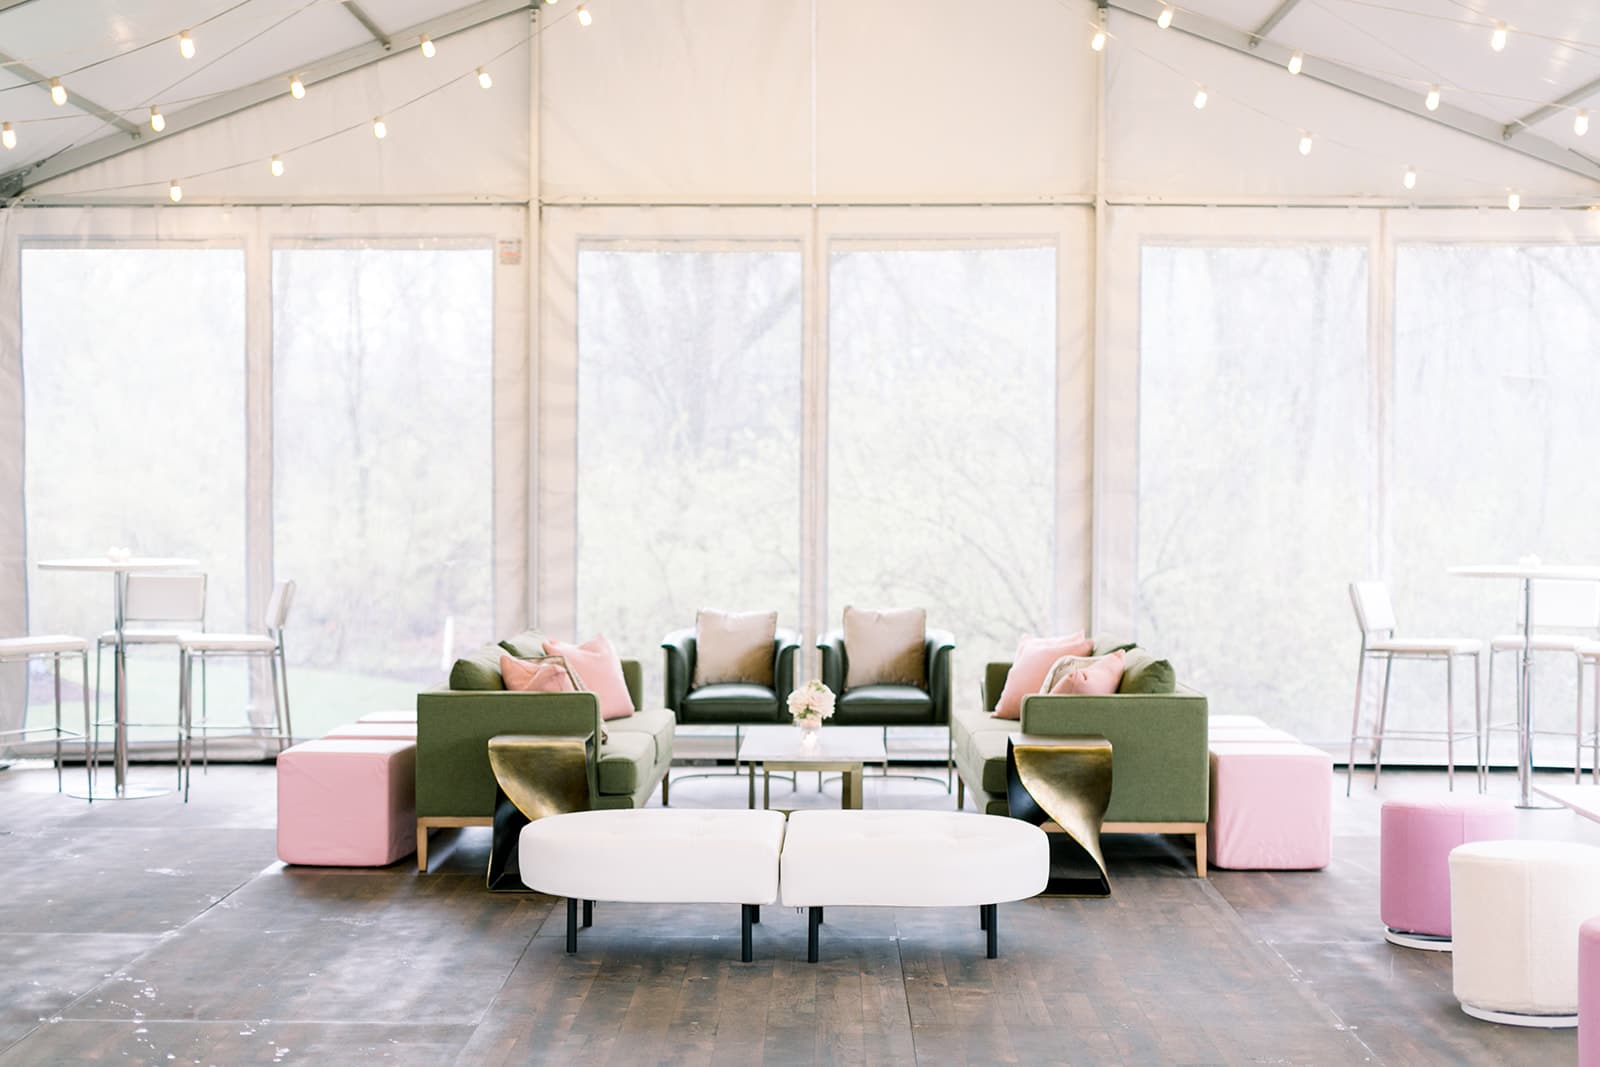 large open room with green, pink, and gold color accents